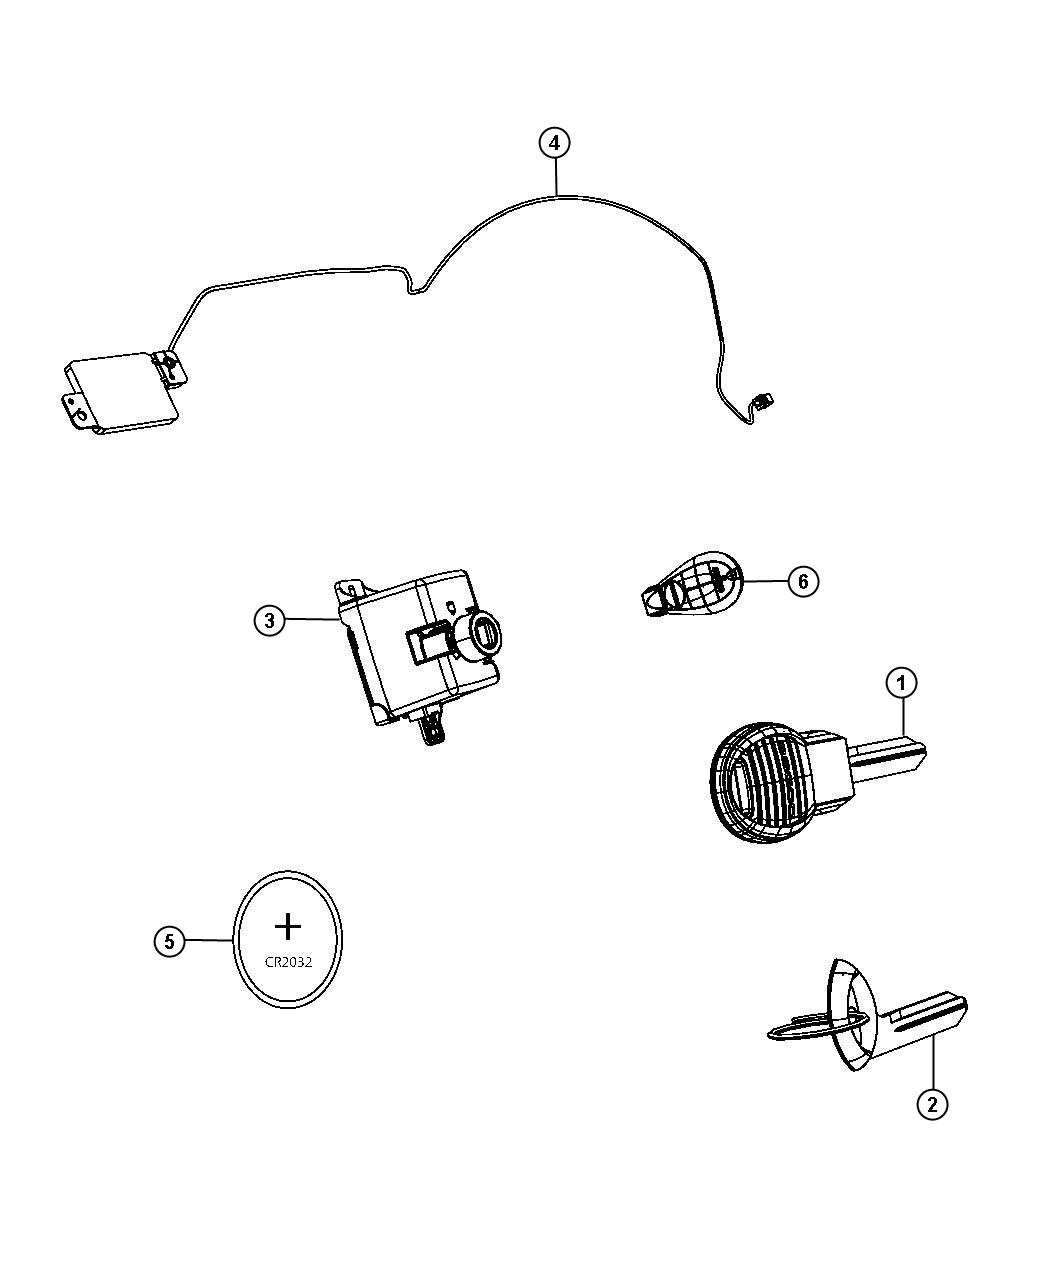 Jeep Grand Cherokee Receiver Wireless Ignition Node